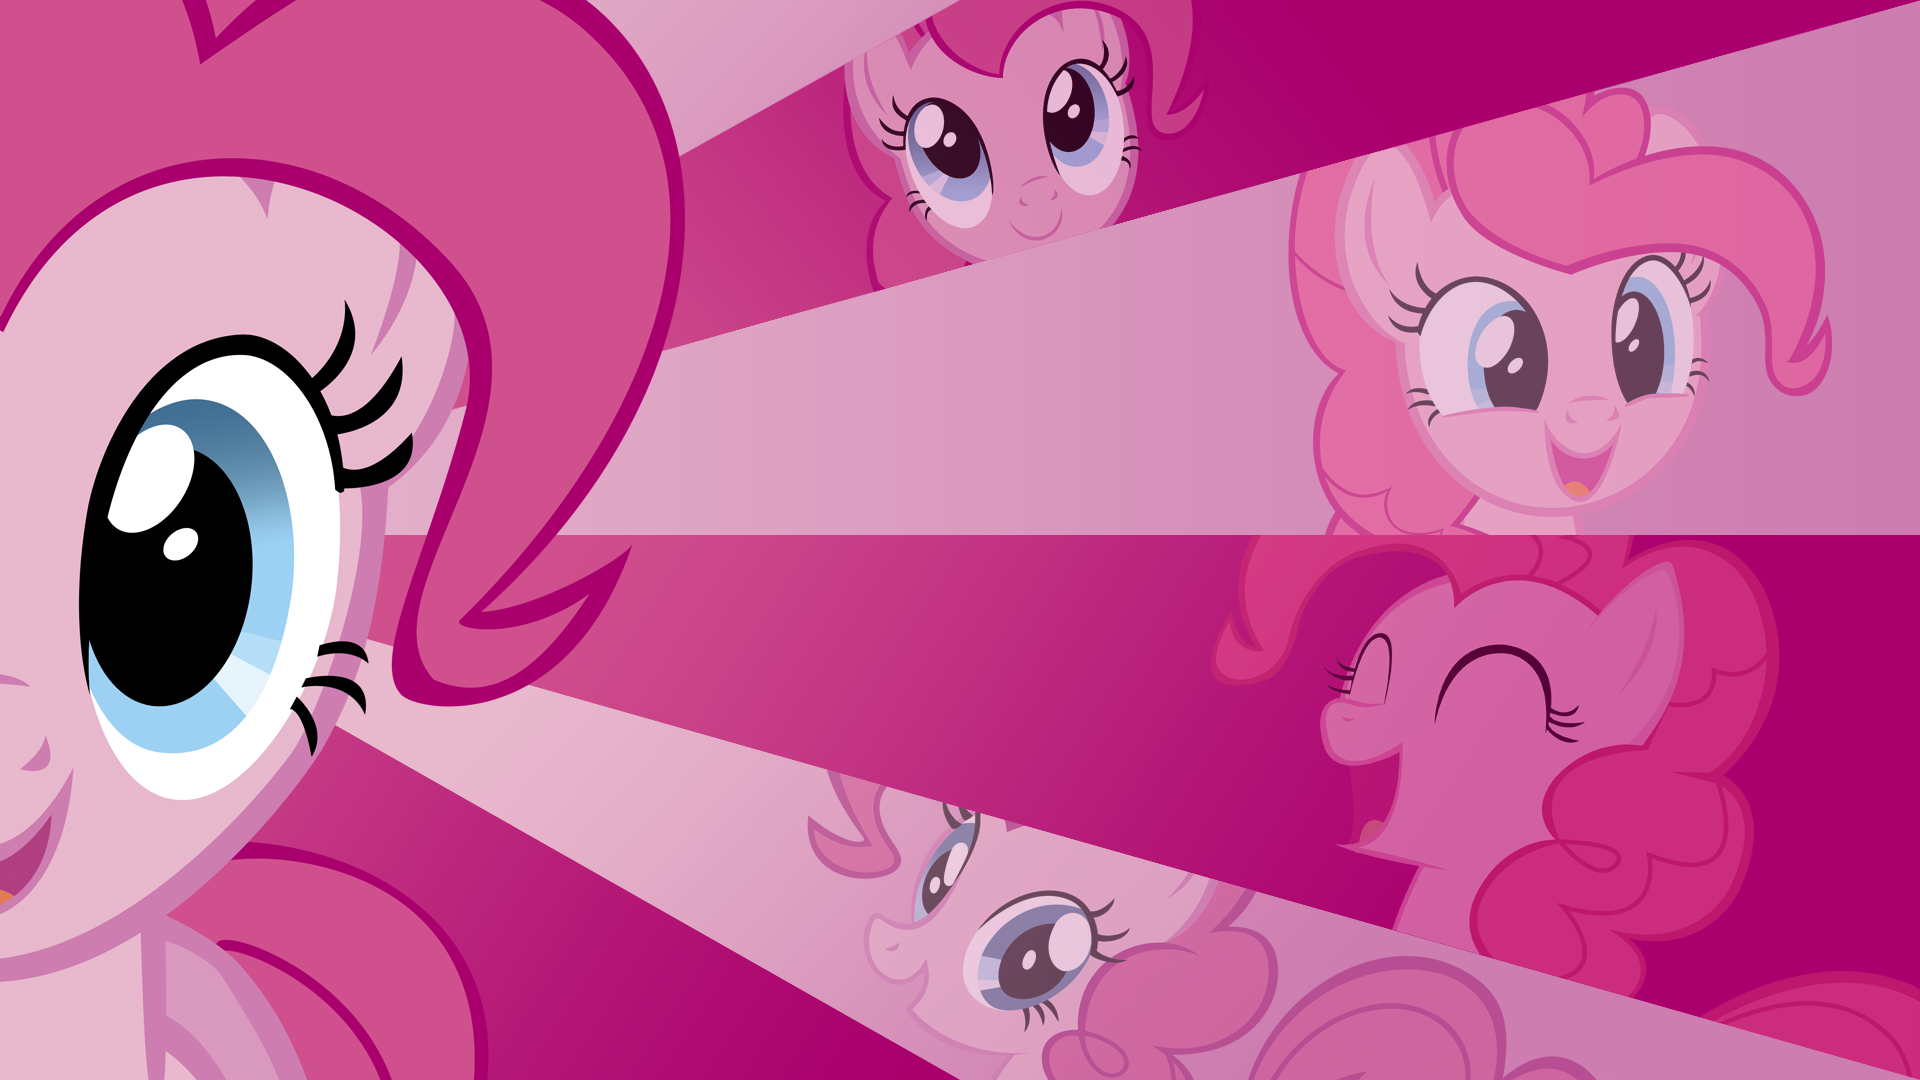 Pinkie Pie Wallpaper Dessin Anime Dessin Anime